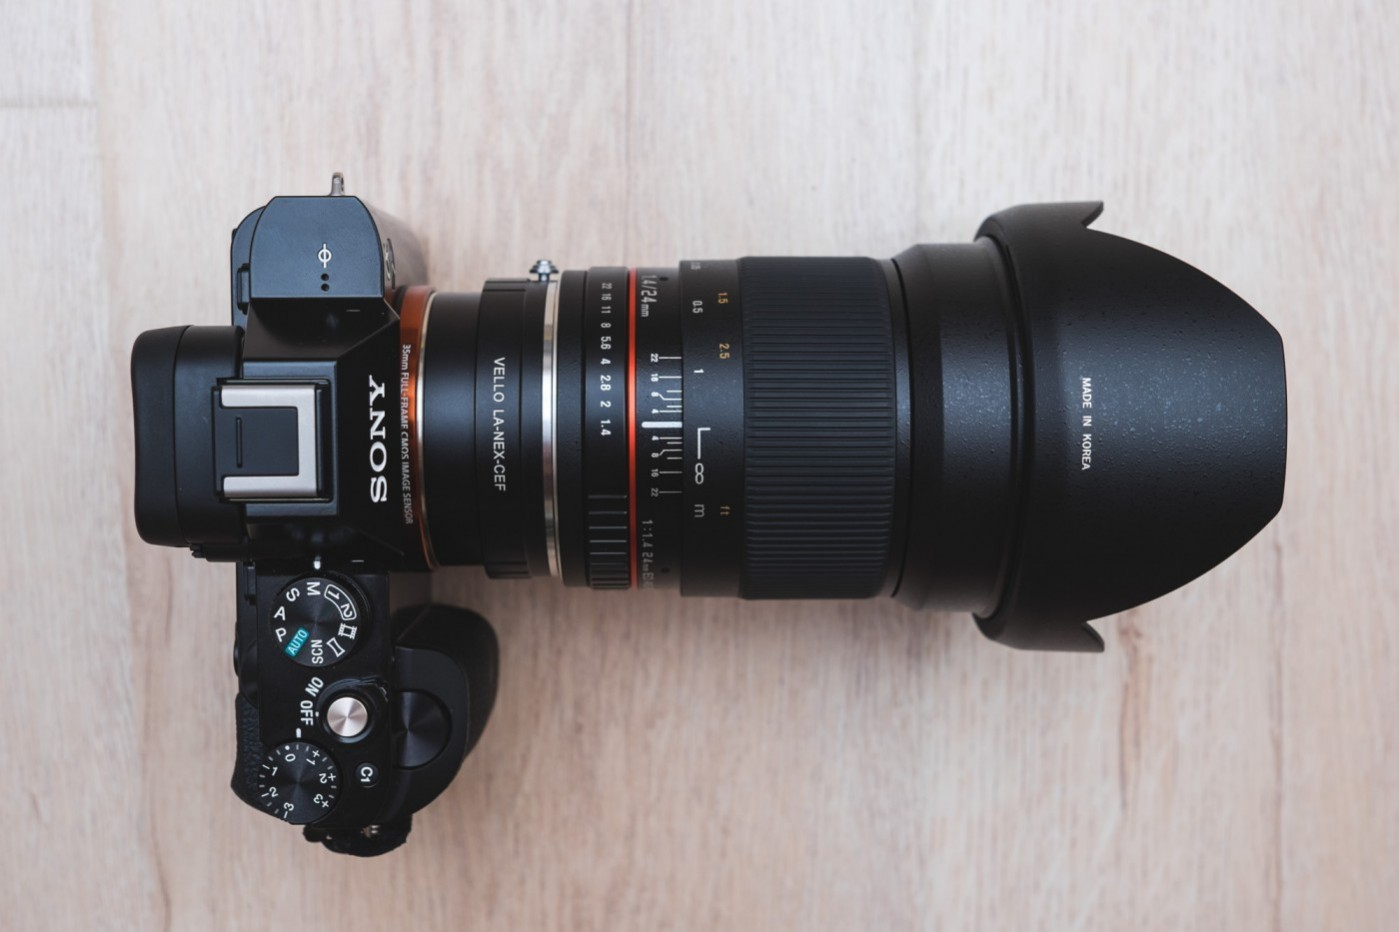 The Sony a7S mounted with the Rokinon 24mm f/1.4 Lens